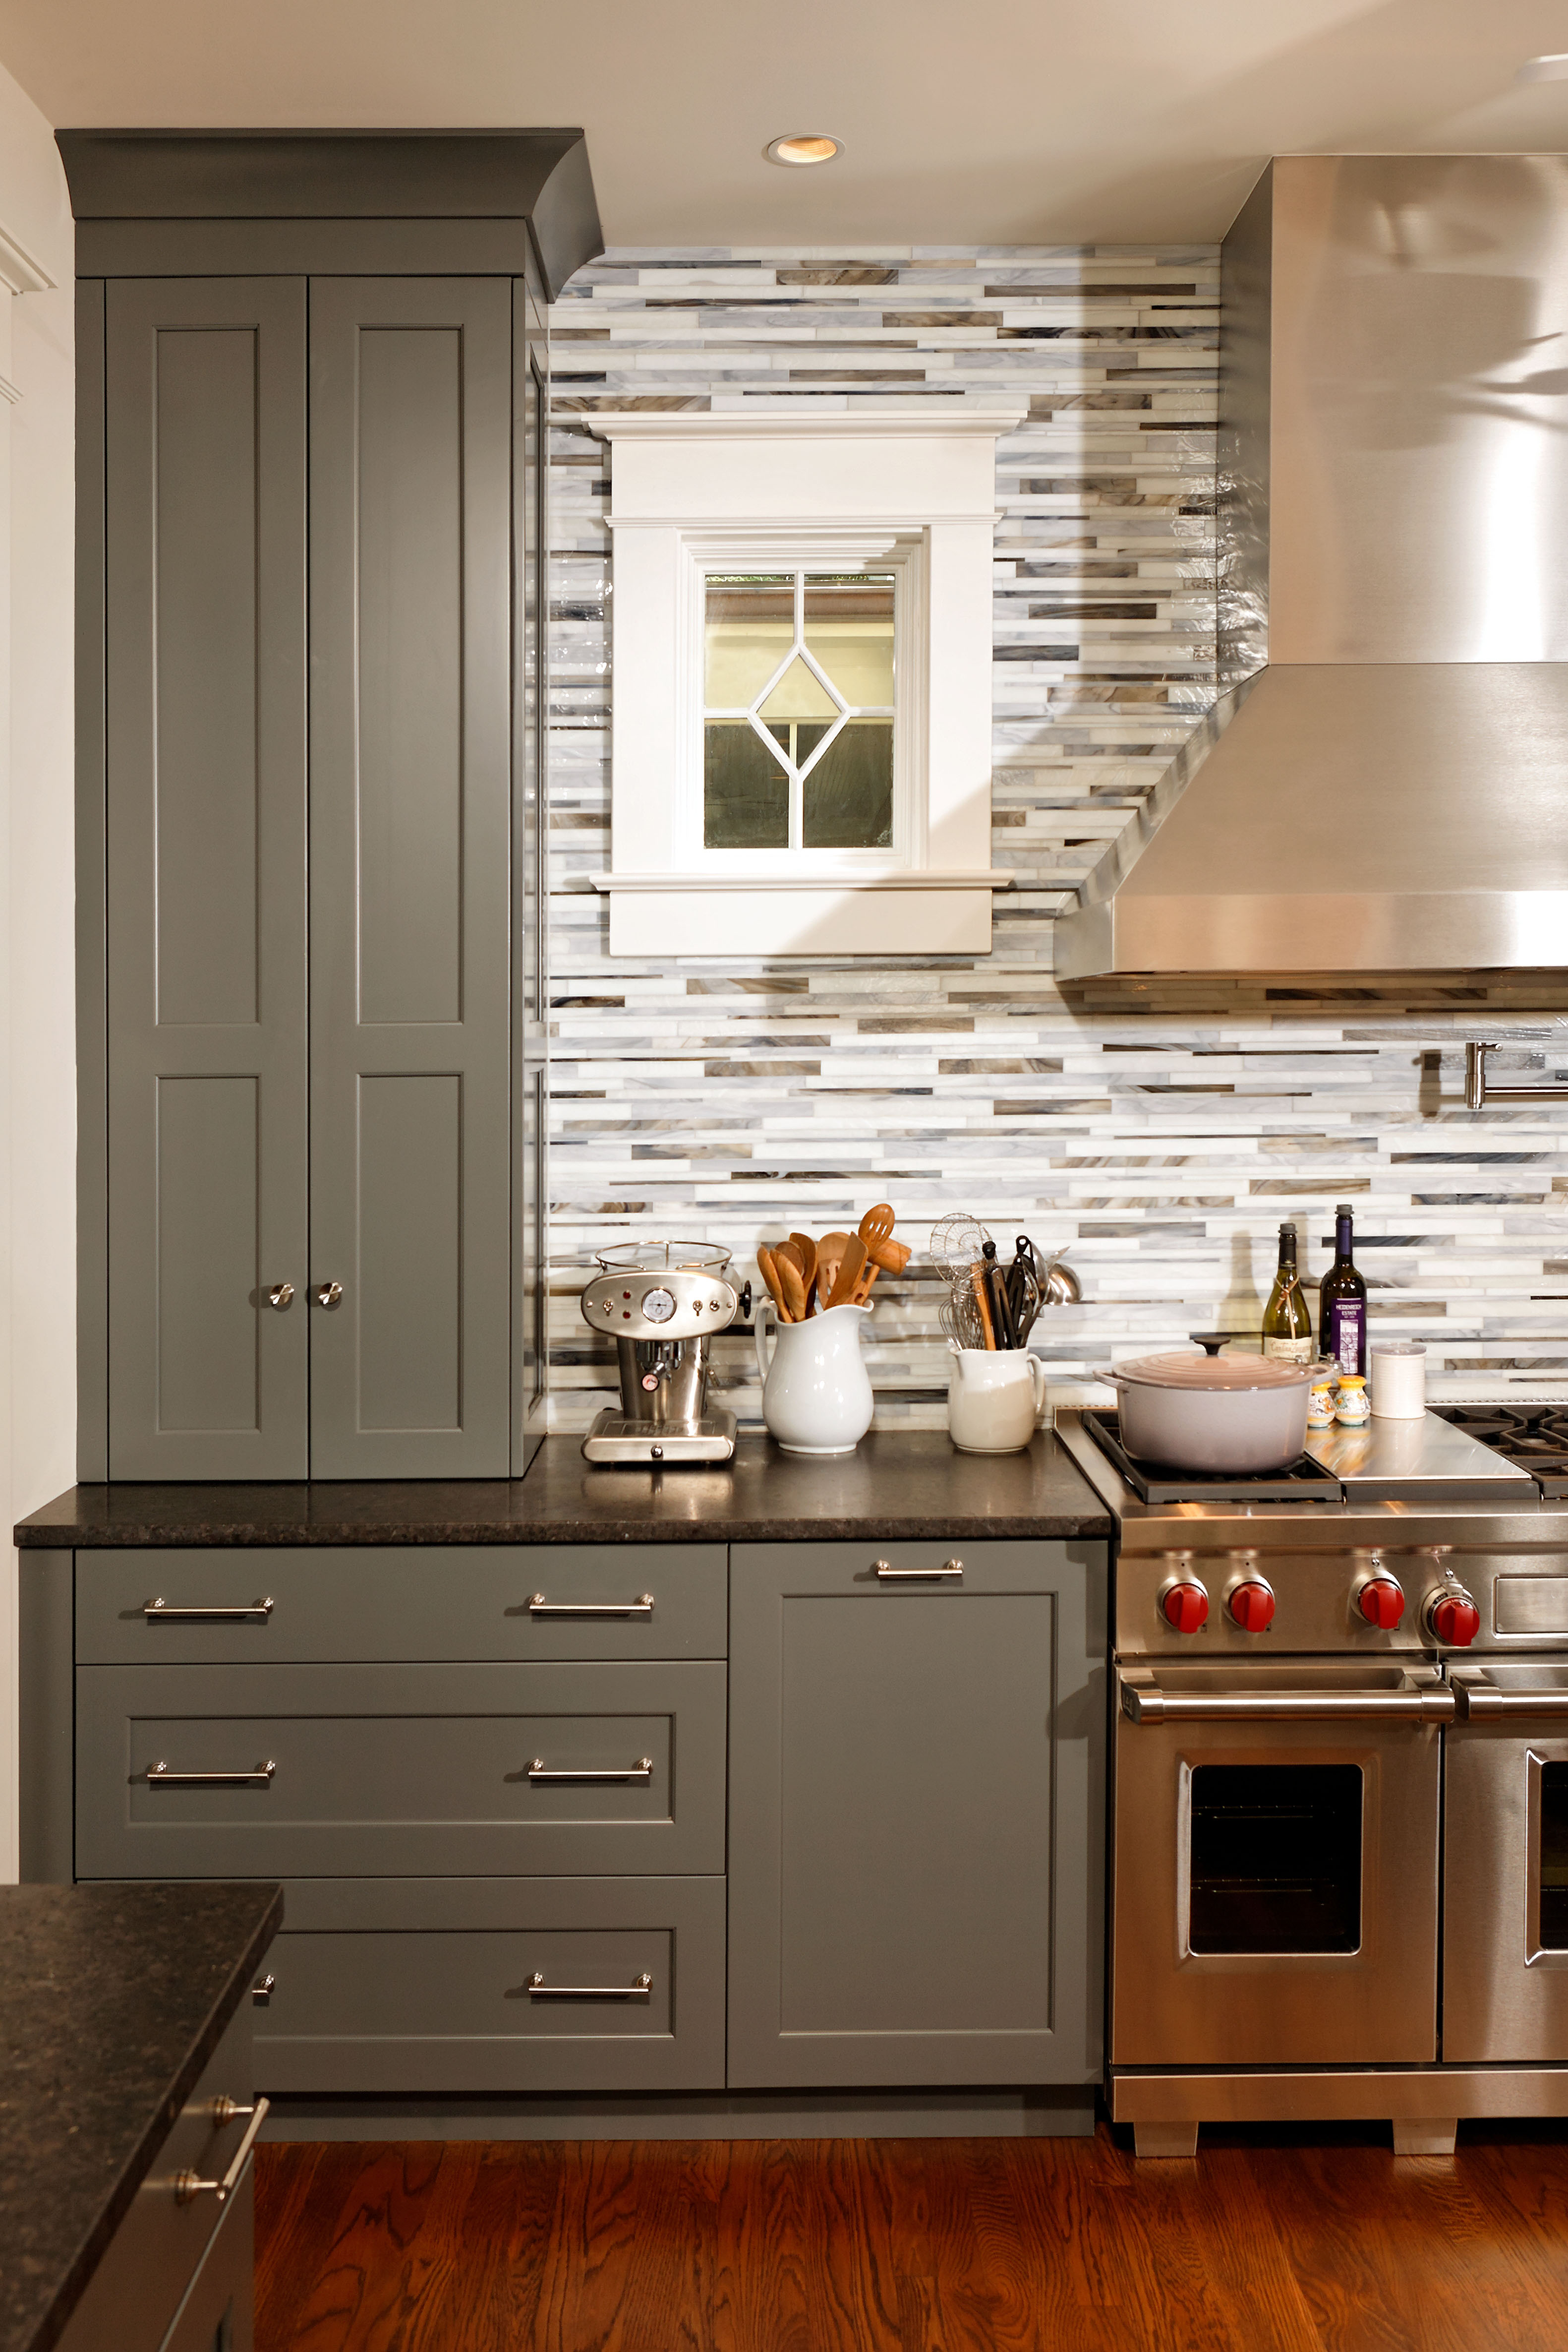 Gray Cabinets and Stove